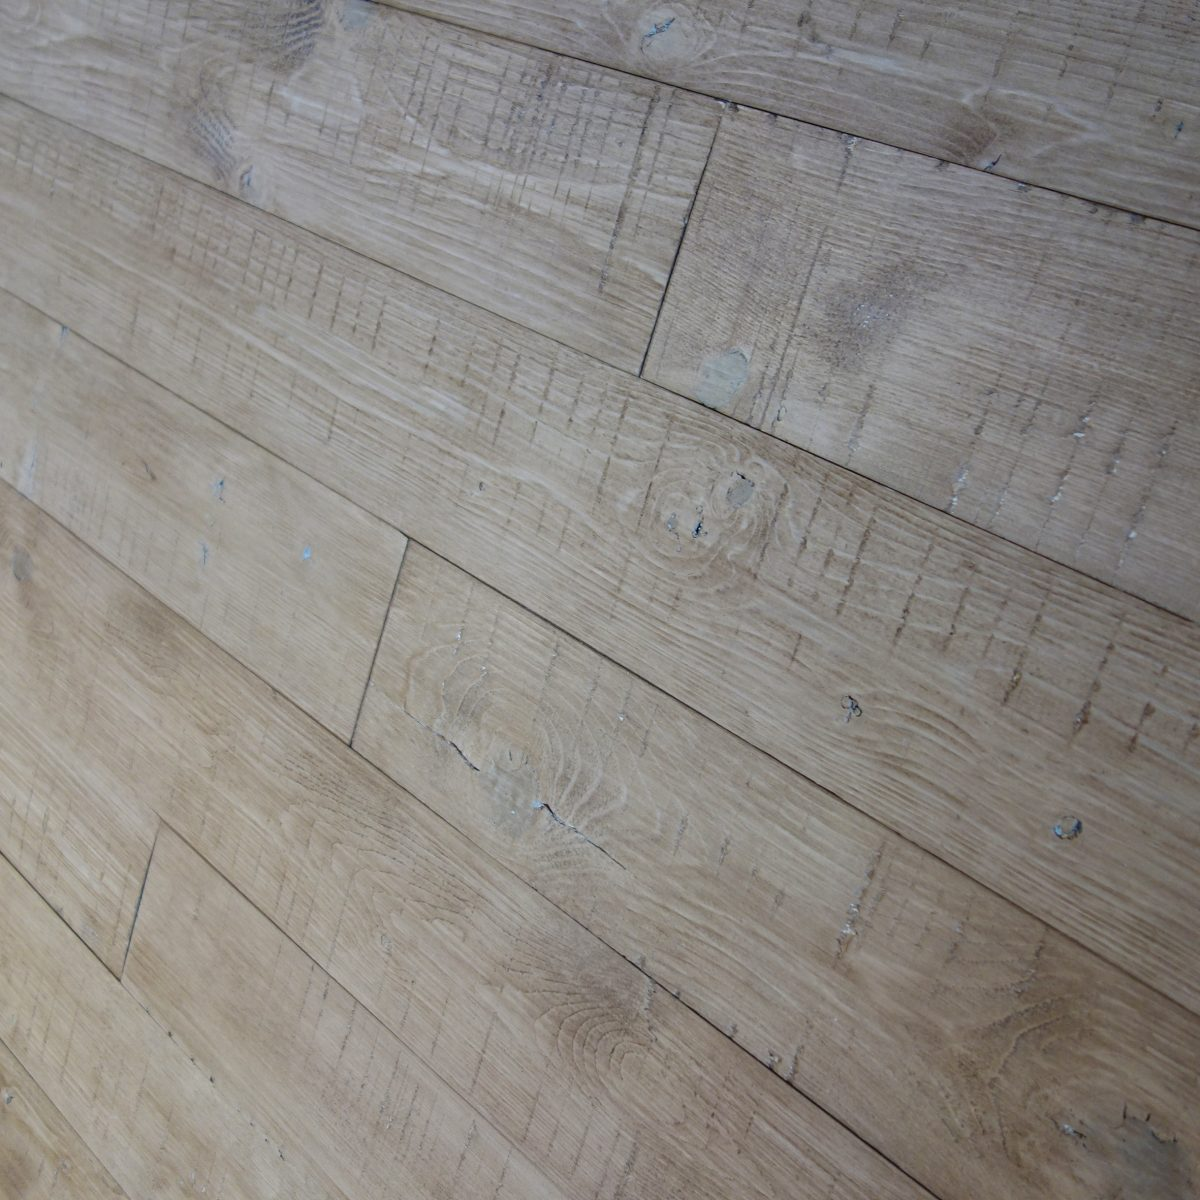 peel and stick wood-planks for walls